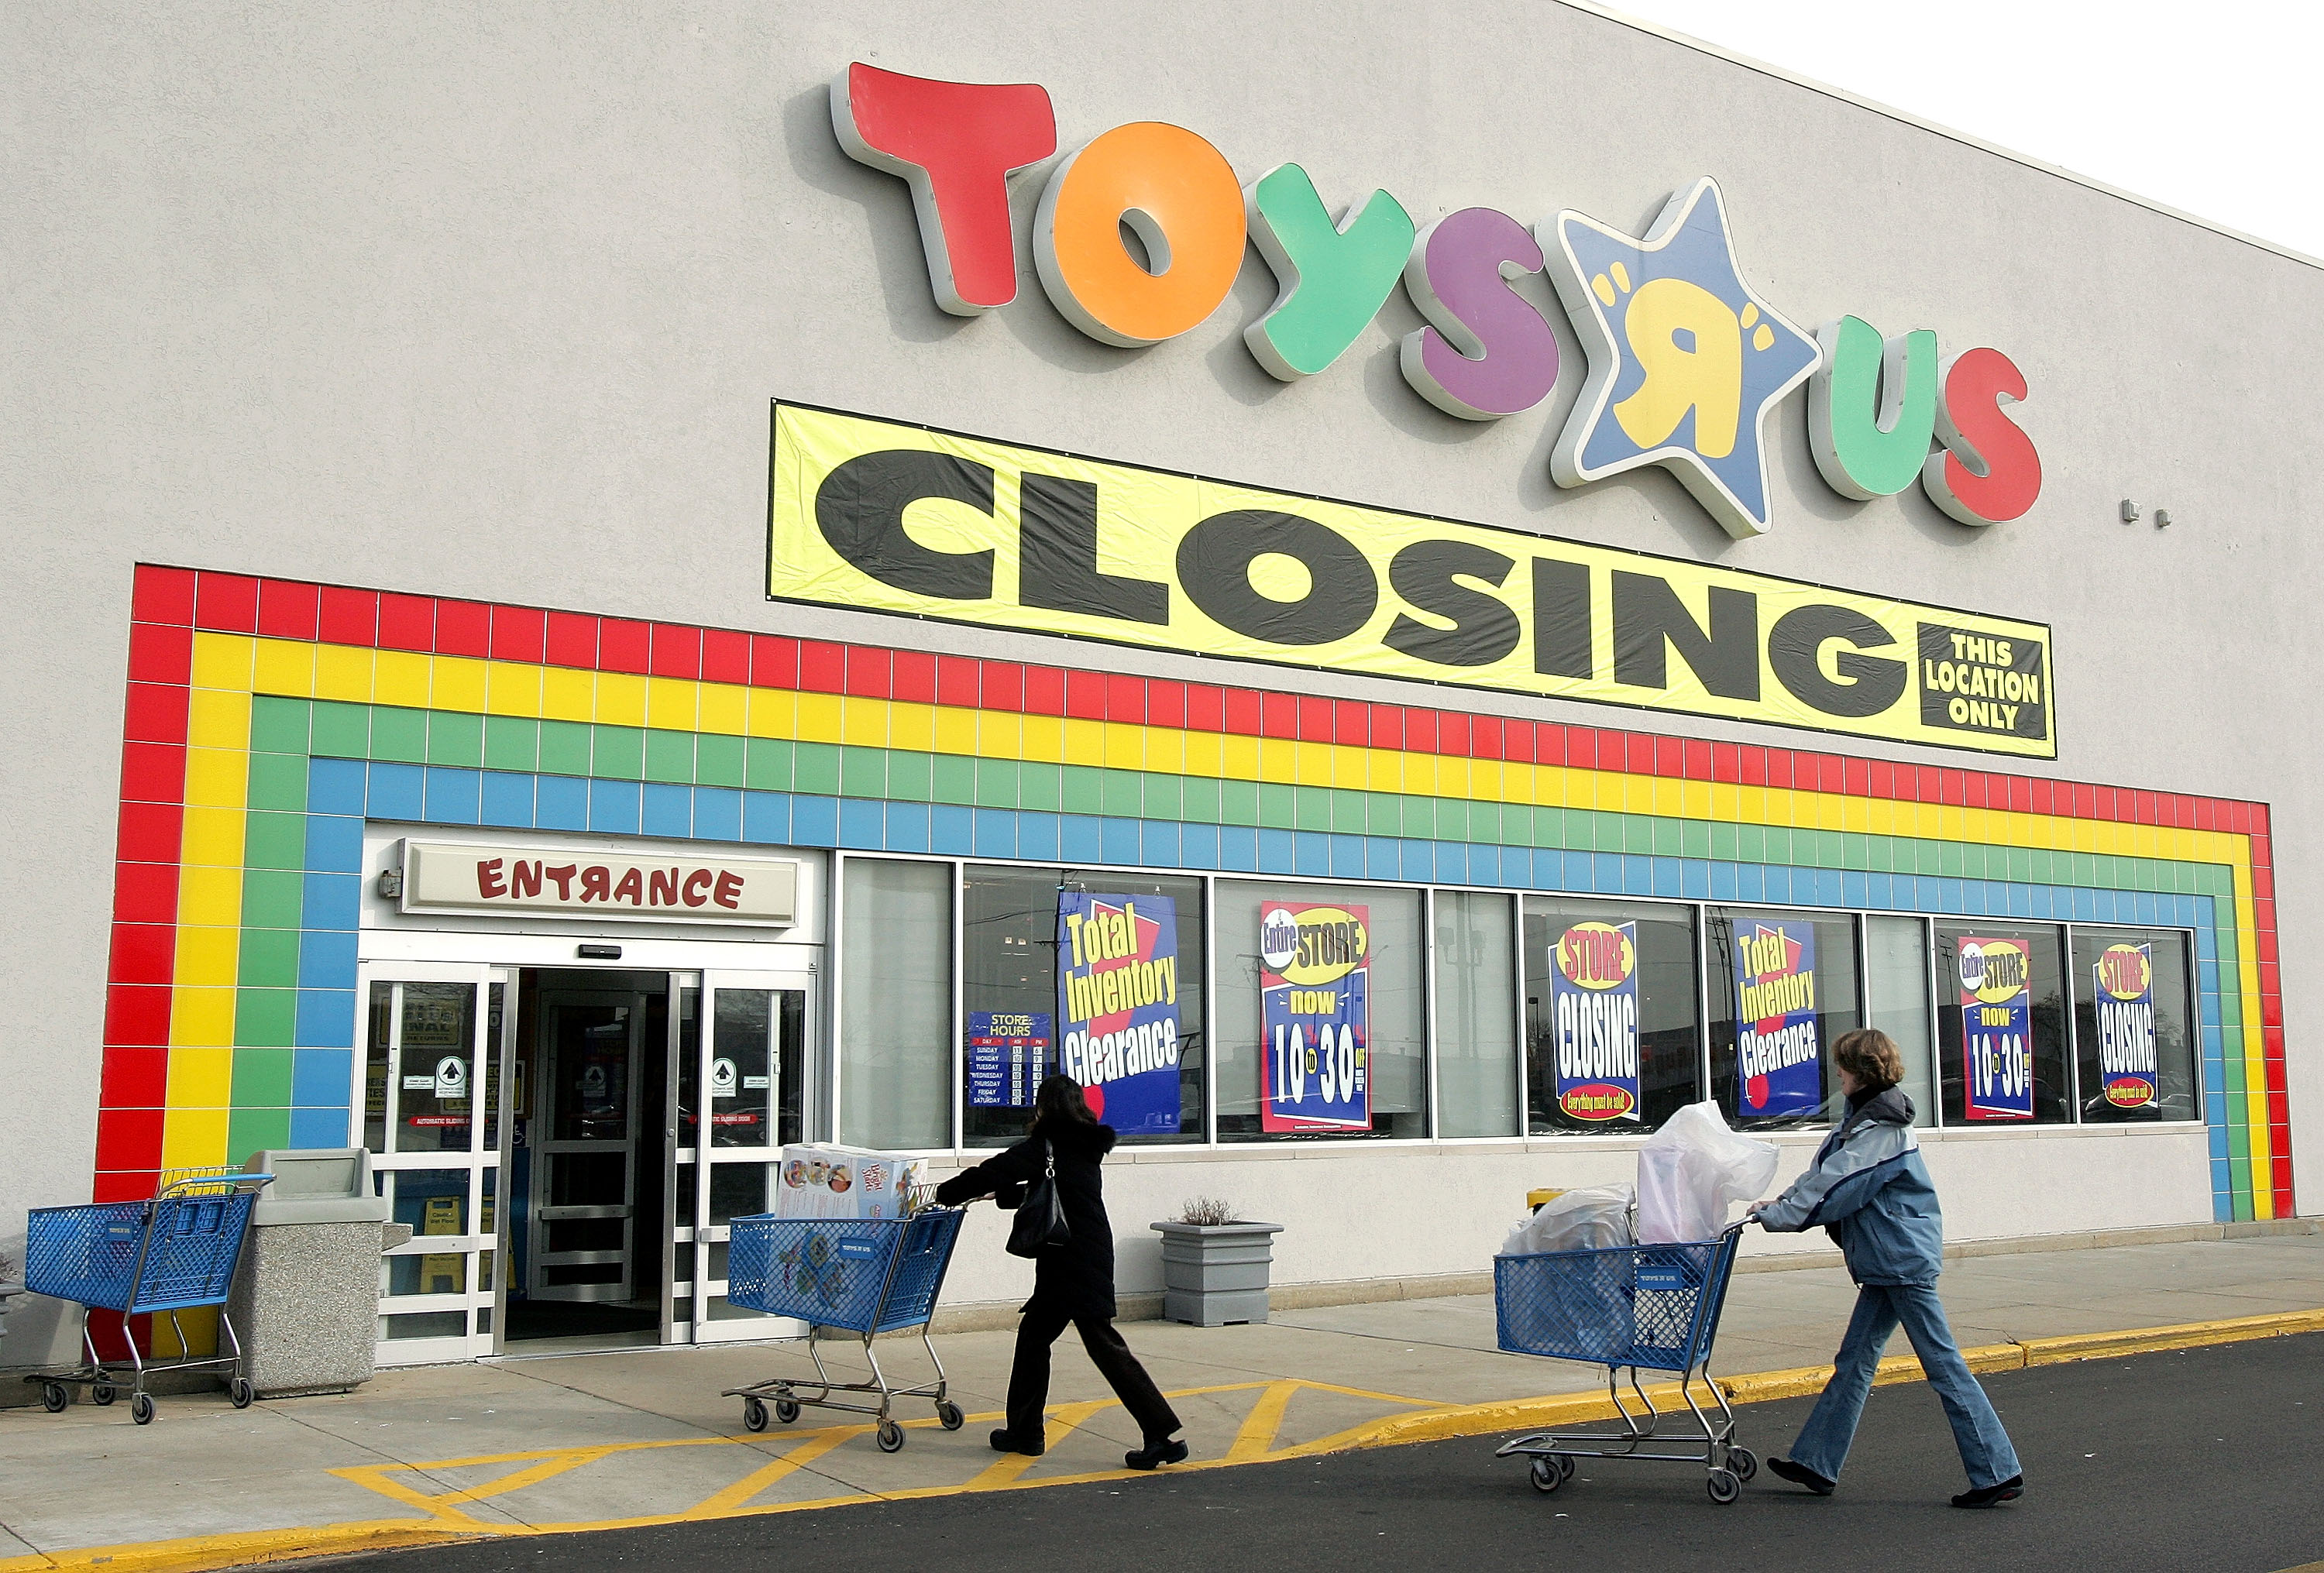 Jun 24,  · Game over for Toys R Us! All stores now closed, but is this really the end? All Toys R Us and Babies R Us stores are now closed, according to the iconic toy retailer's social media accounts.